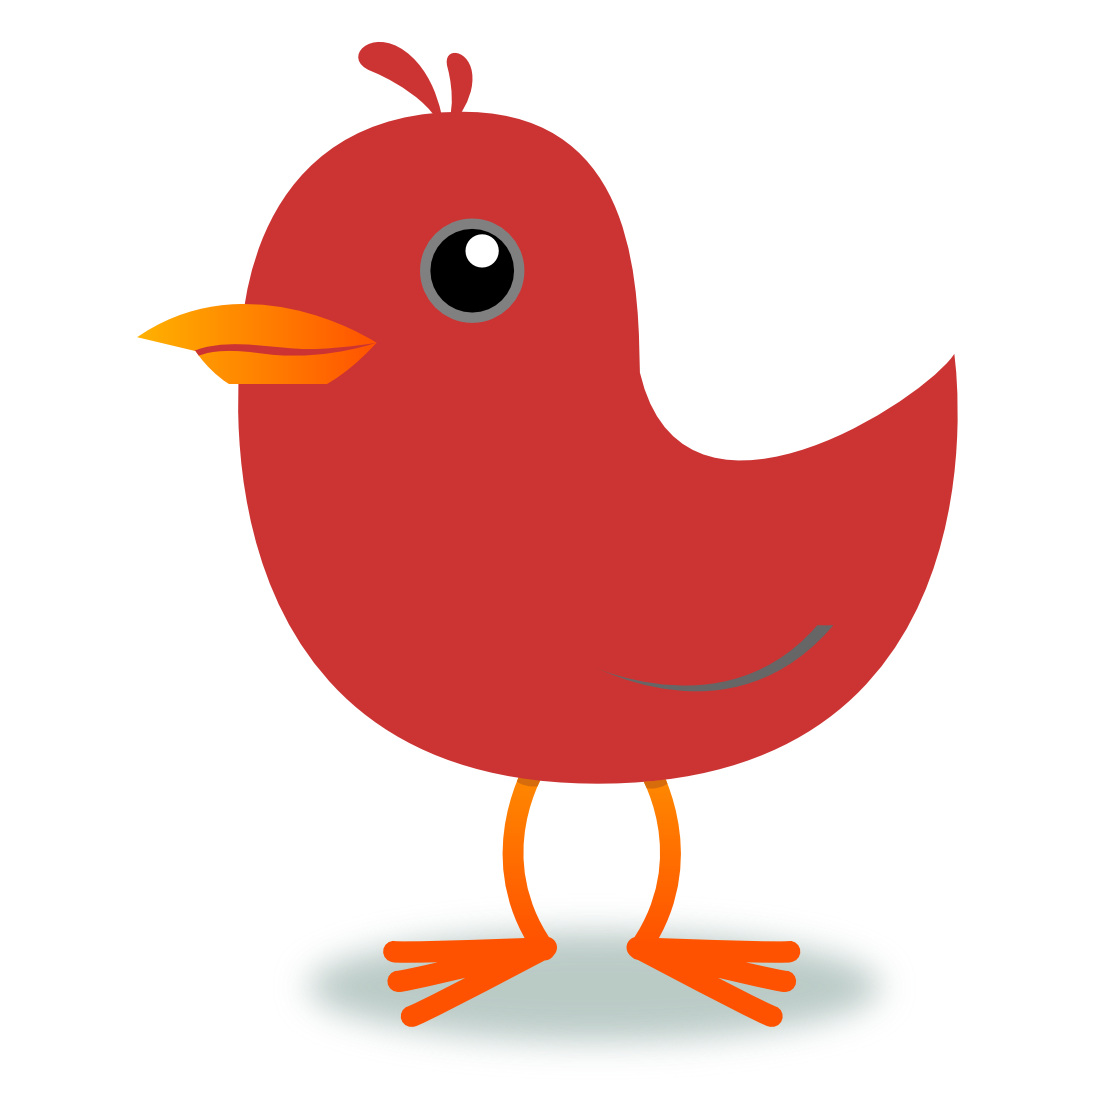 11 Red Bird Clipart Free Cliparts That Y-11 Red Bird Clipart Free Cliparts That You Can Download To You-2